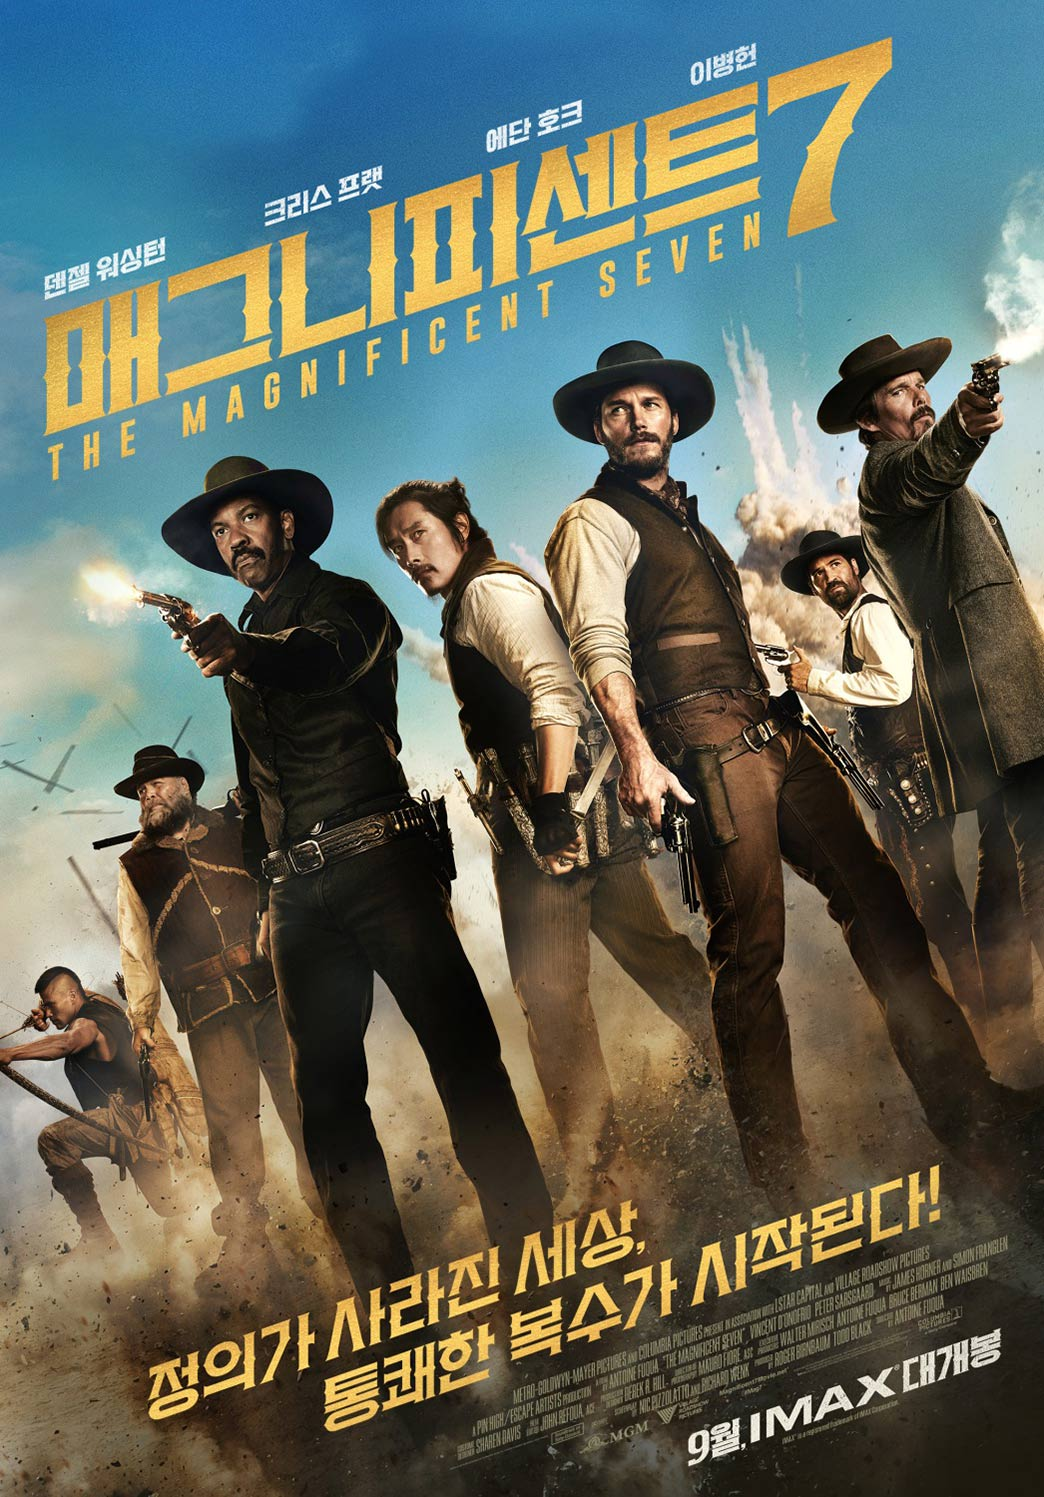 the-magnificent-seven-poster-4